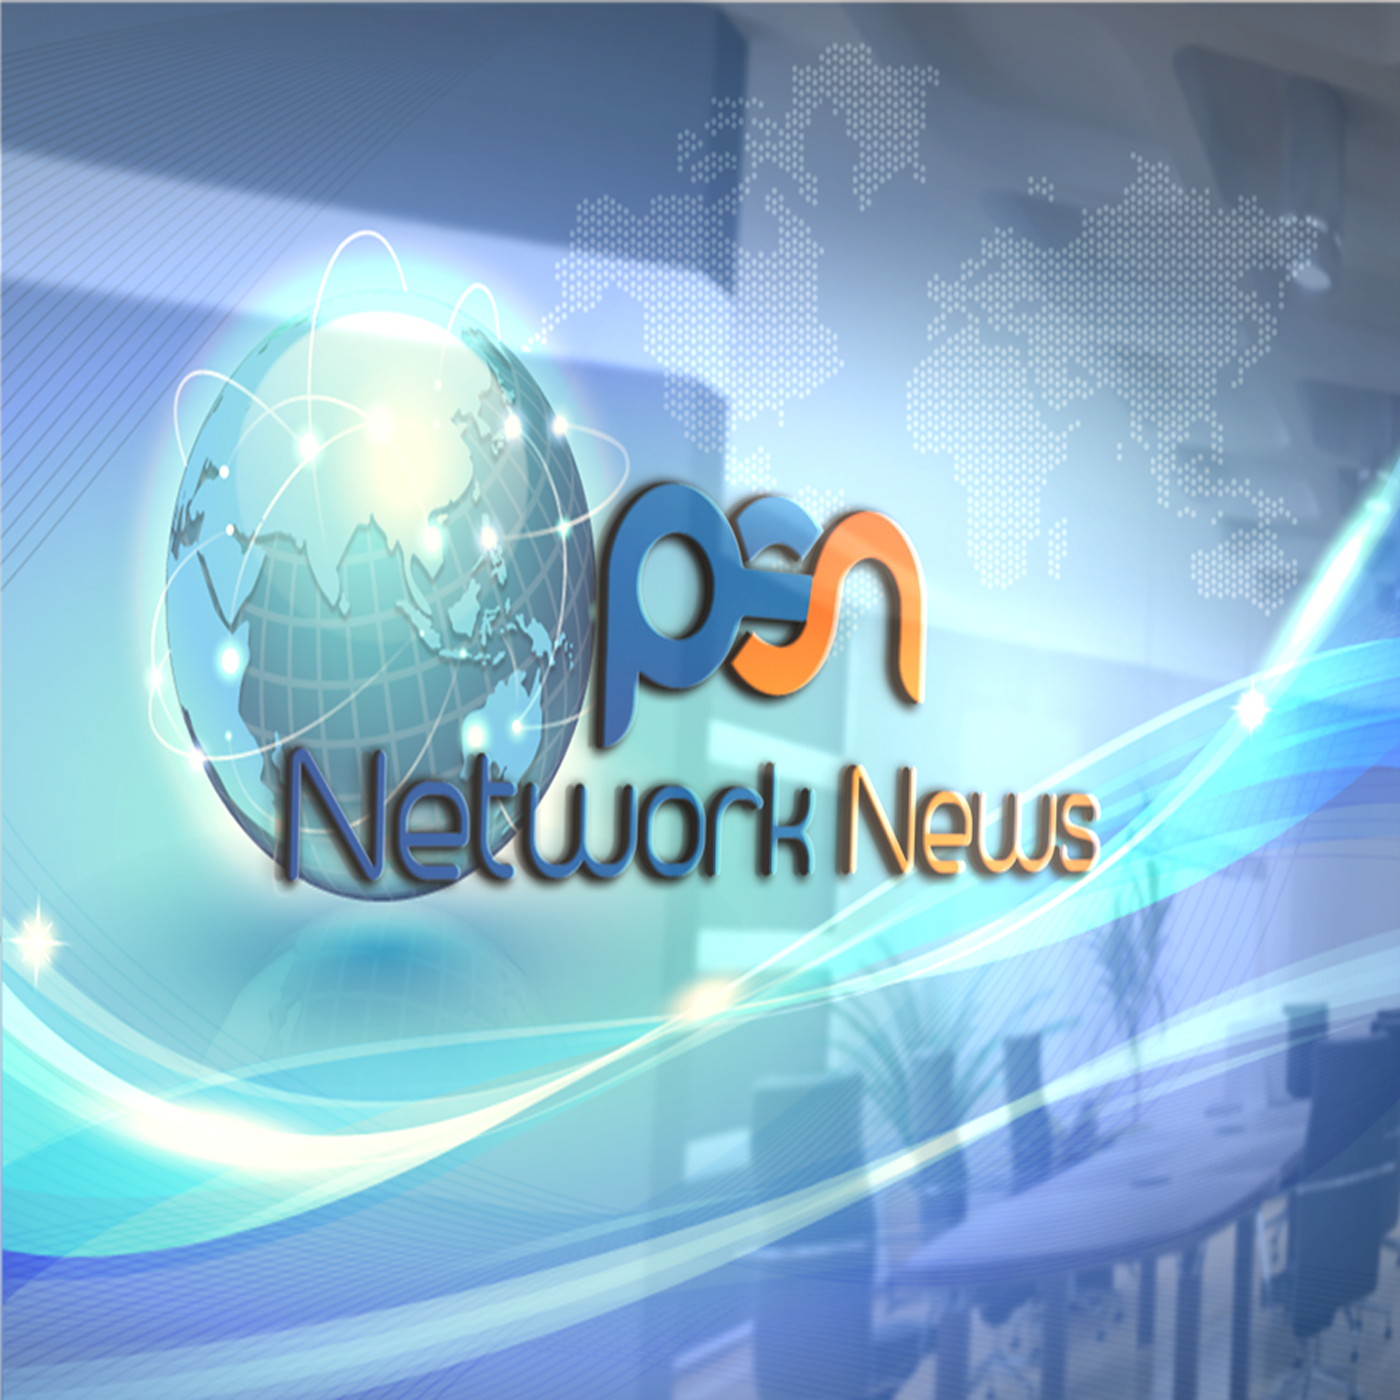 PSN News Network